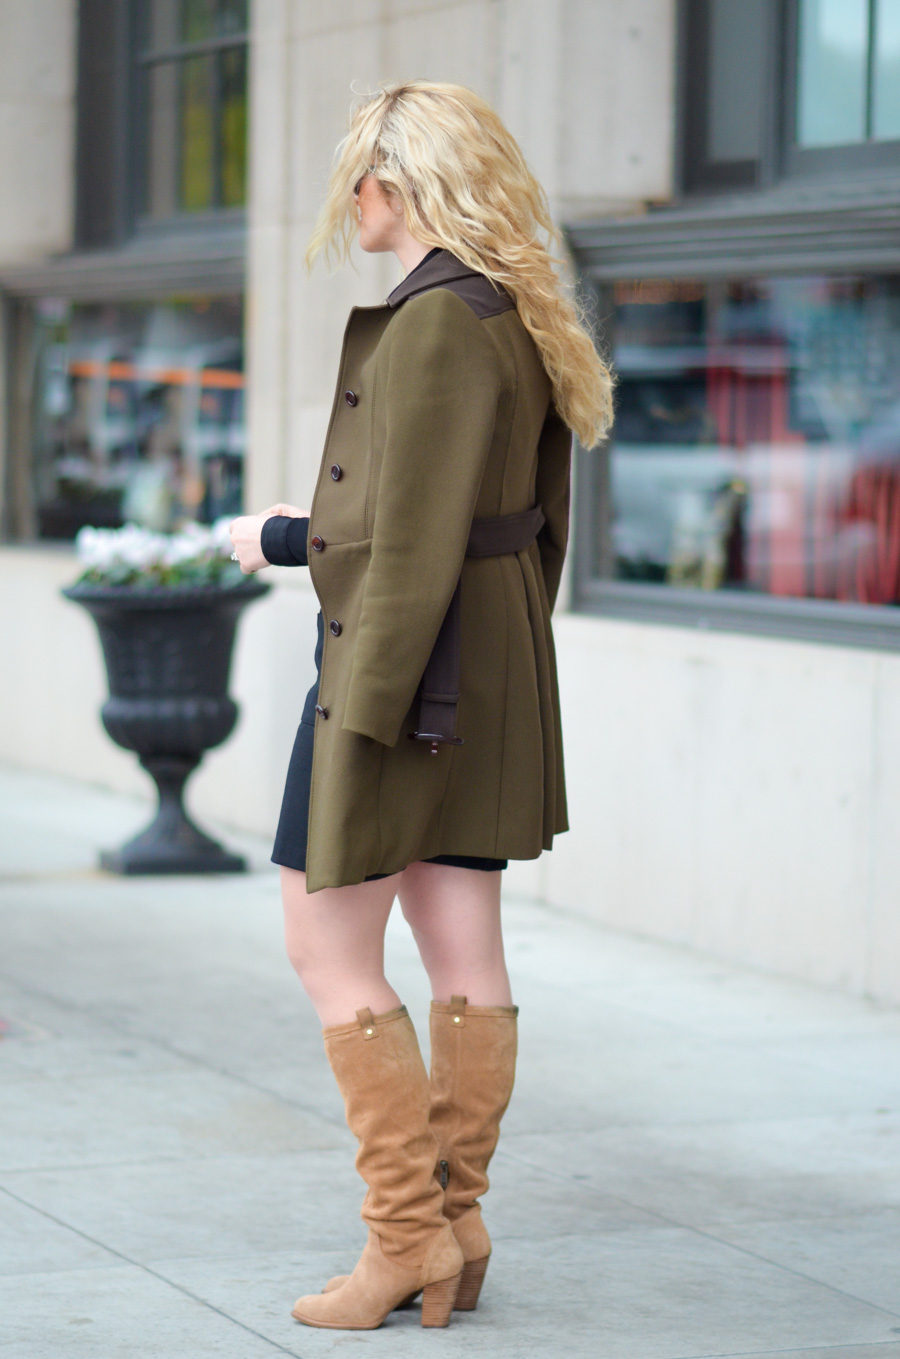 How to Wear Knee High Boots Outfit w. Dress | UGG Suede Boots w. Heel